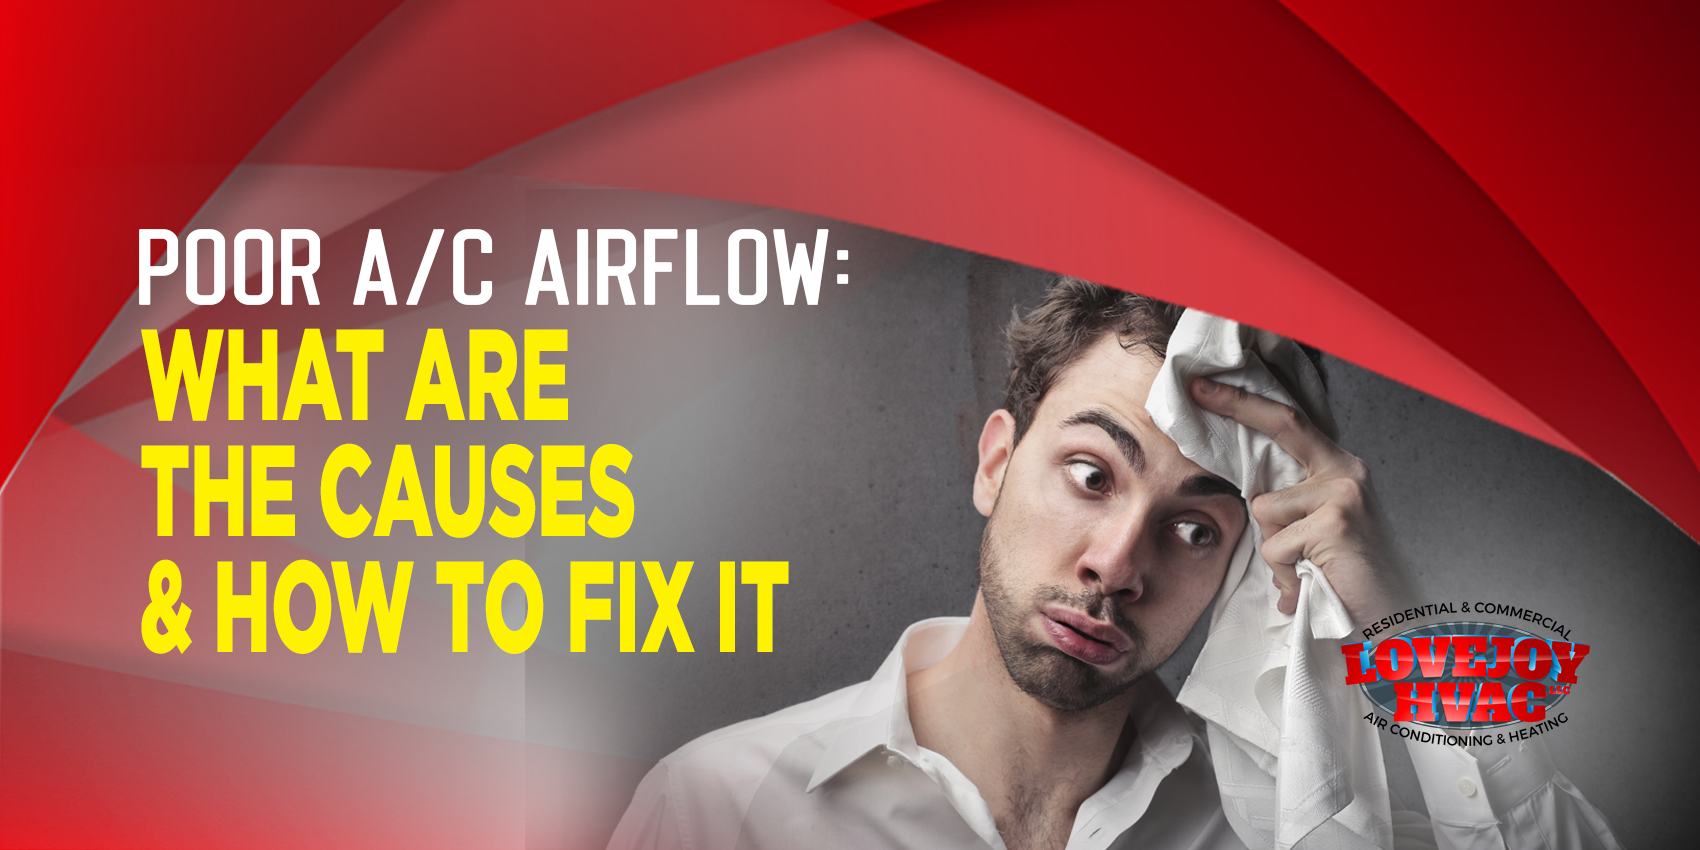 Poor A/C Airflow: What are the Causes & How to Fix it